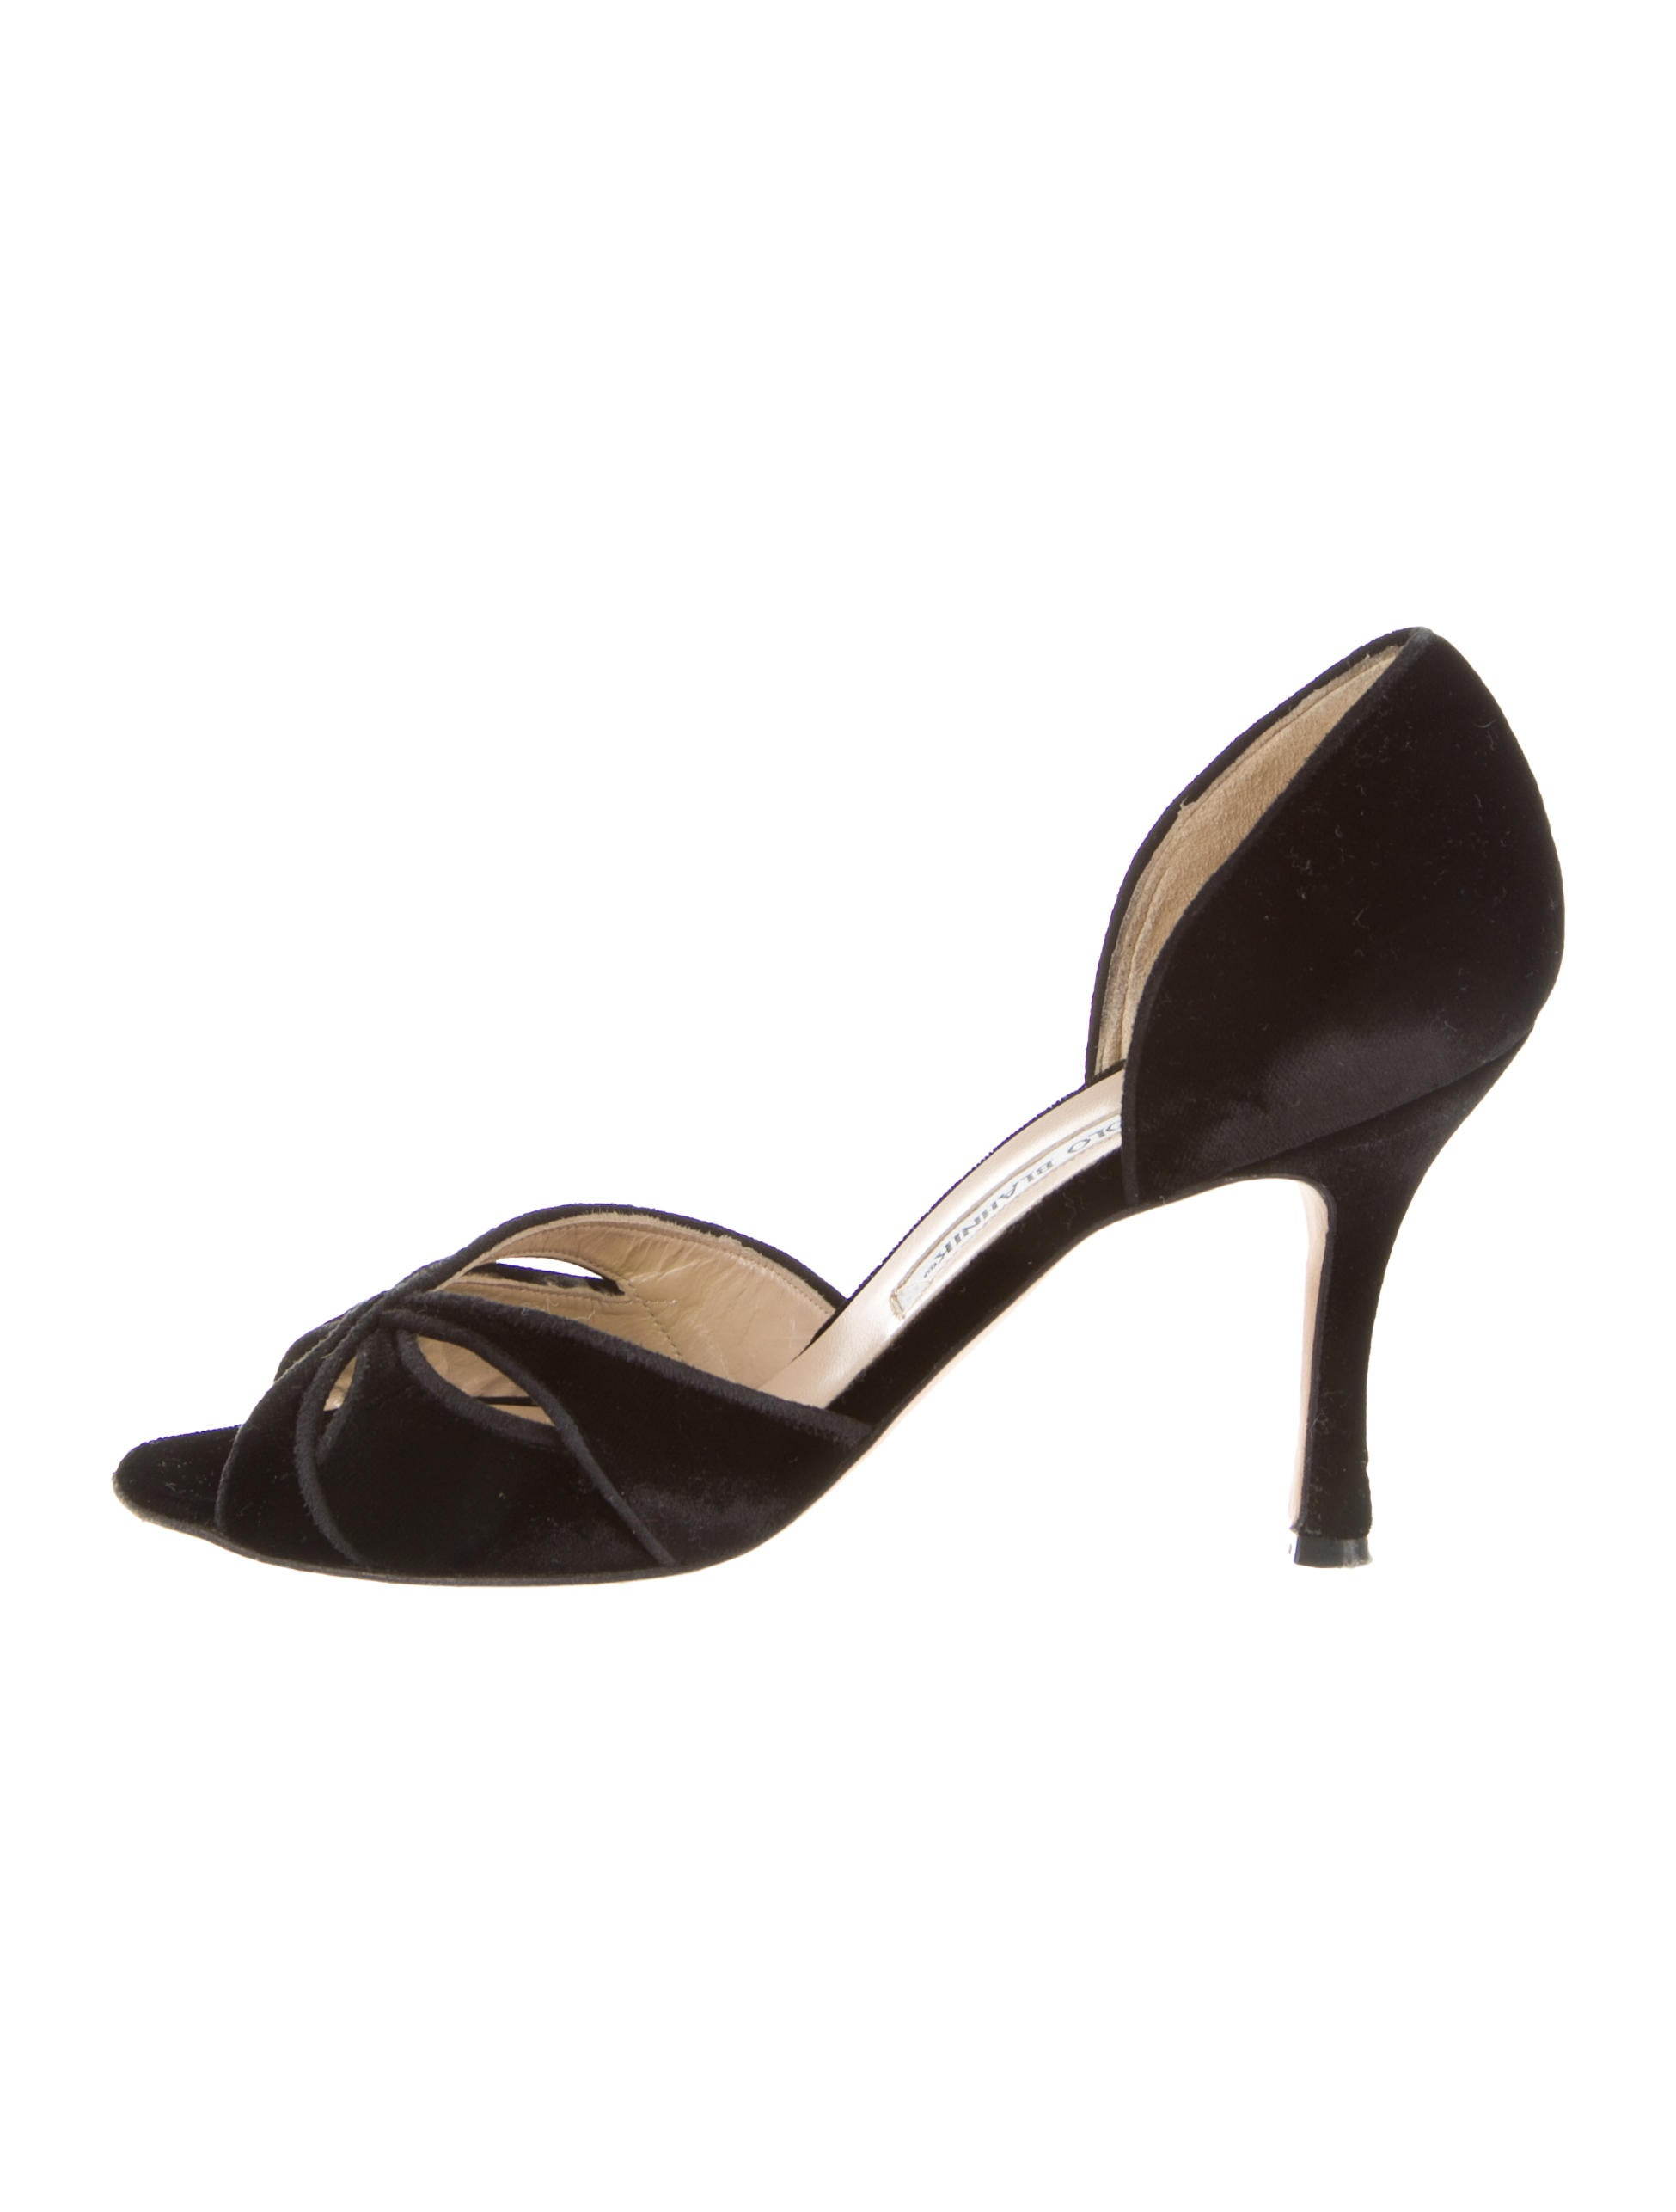 a two-tone pump crafted with sleek patent leather, slip-on styling, a logo plaque heel tab and a pointed toe in a d'orsay style.